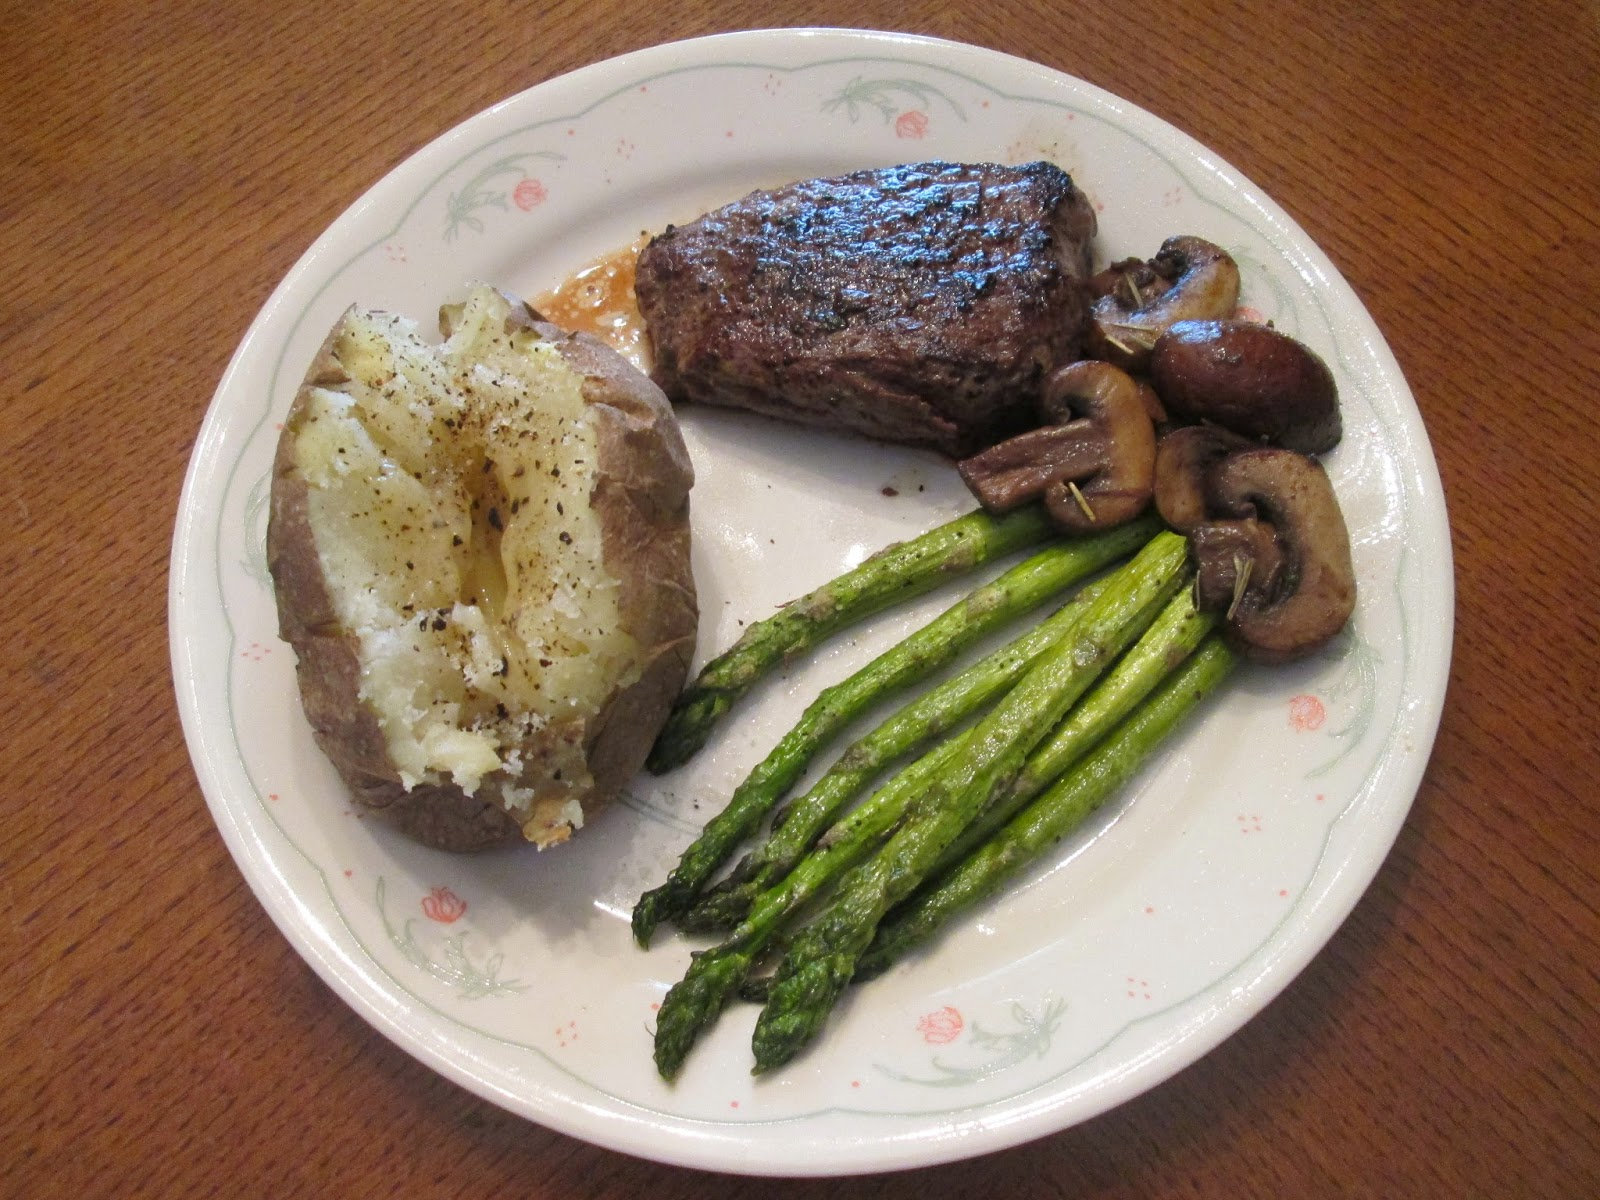 ... Sirloin Steak w/ Sauteed Mushrooms, Roasted Asparagus, and Baked